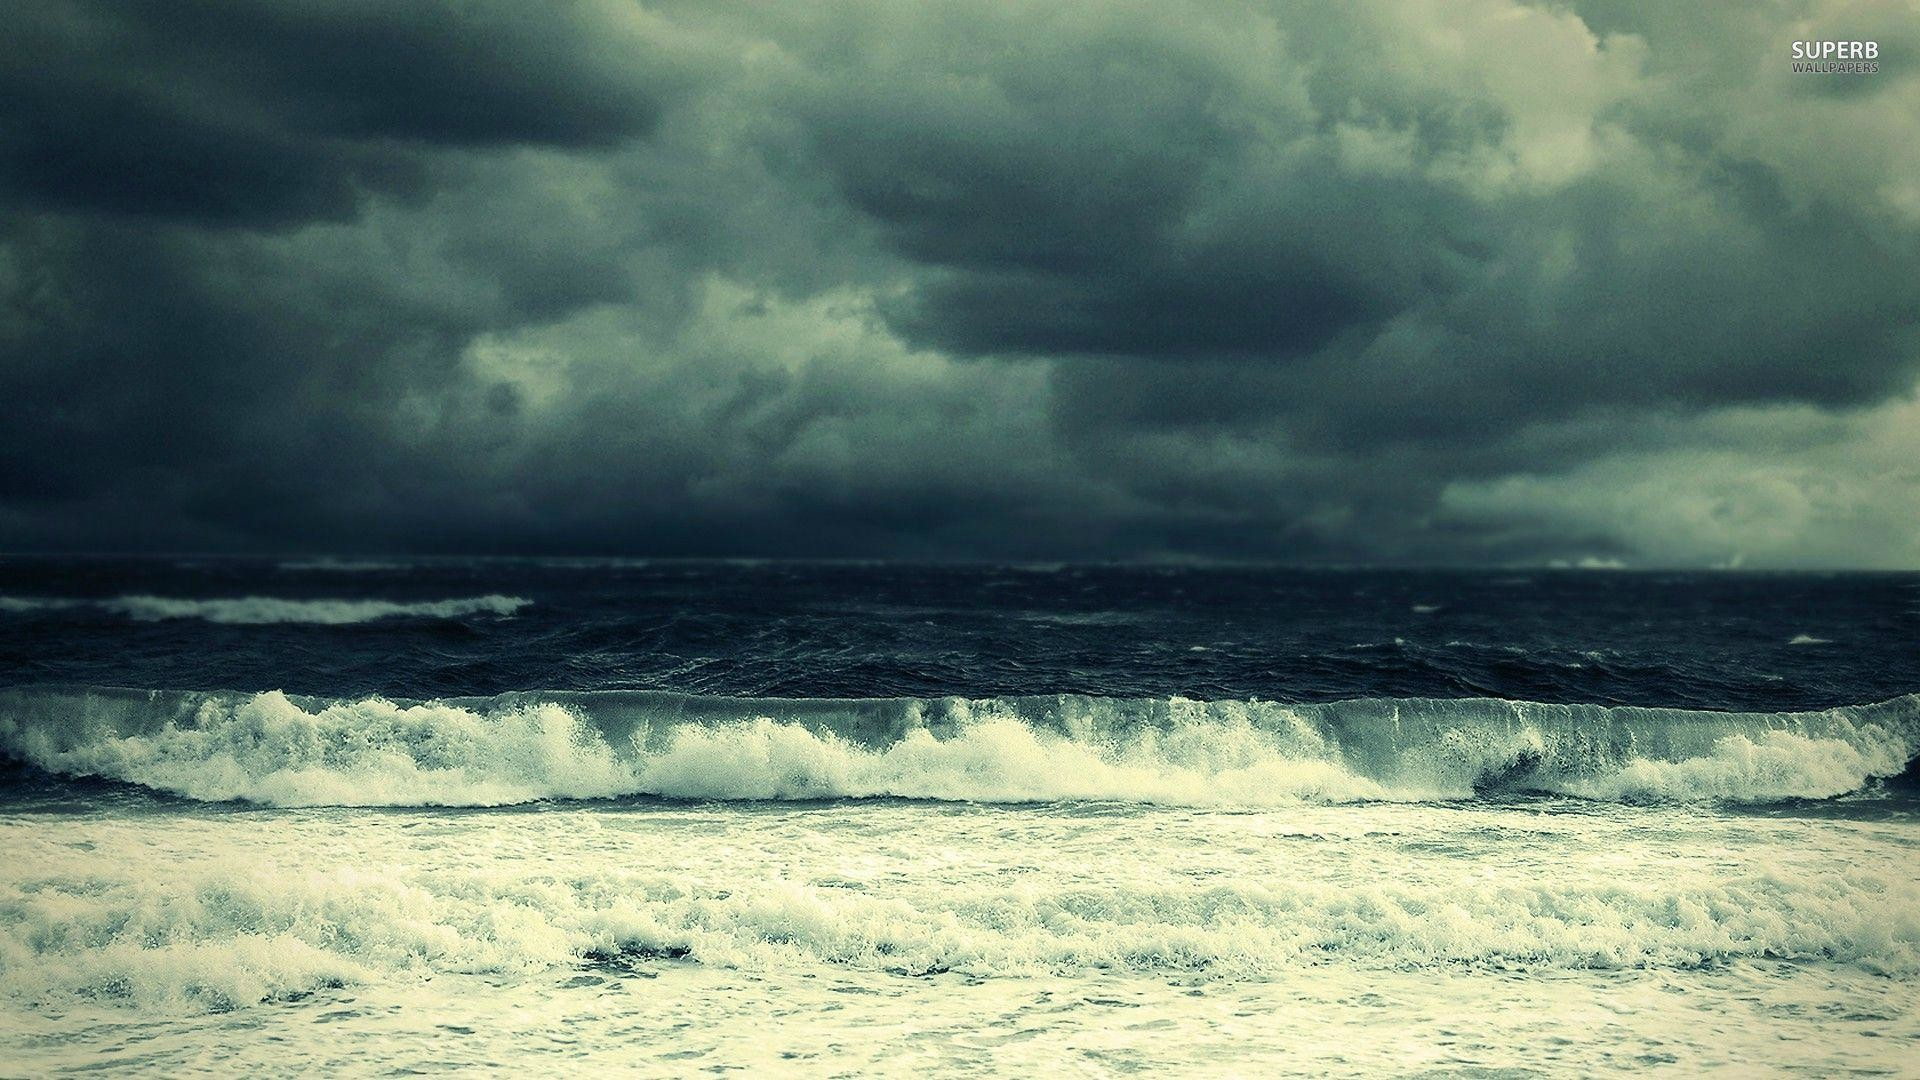 Res: 1920x1080, Stormy sea wallpaper - Beach wallpapers - #